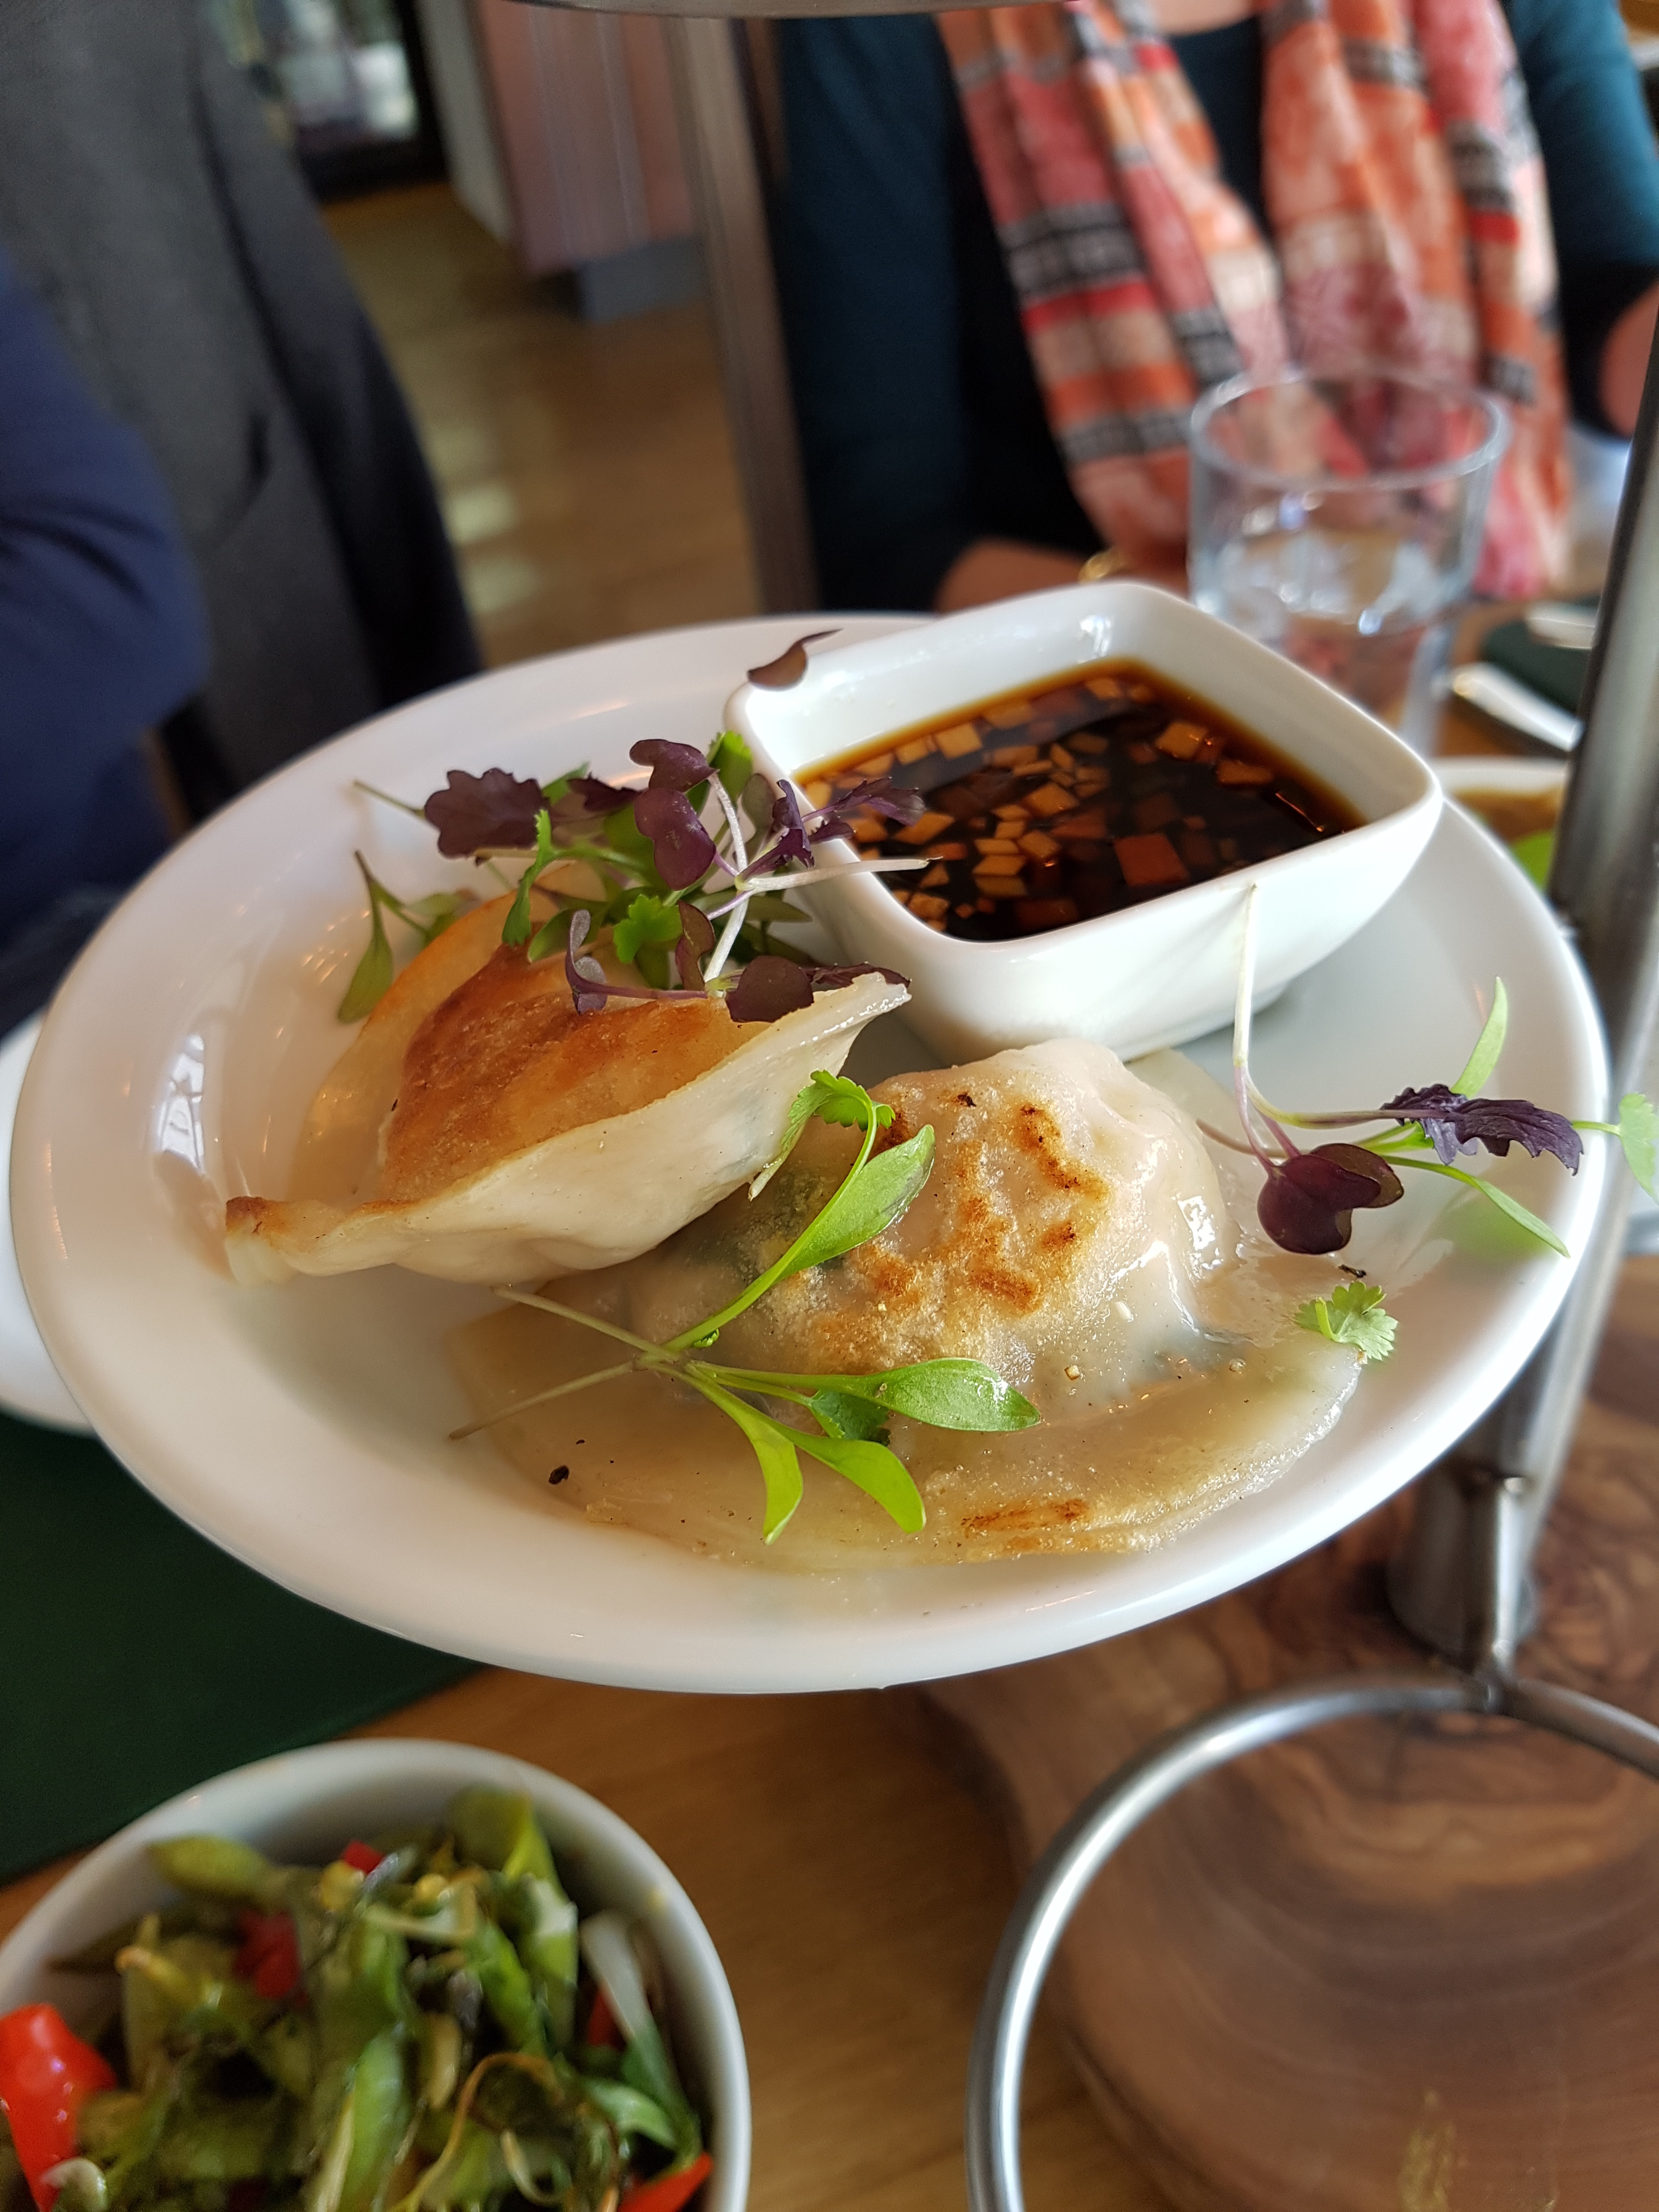 Gyoza filled with quinoa, tofu, peanuts and spring onions, served with Vietnamese dipping sauce